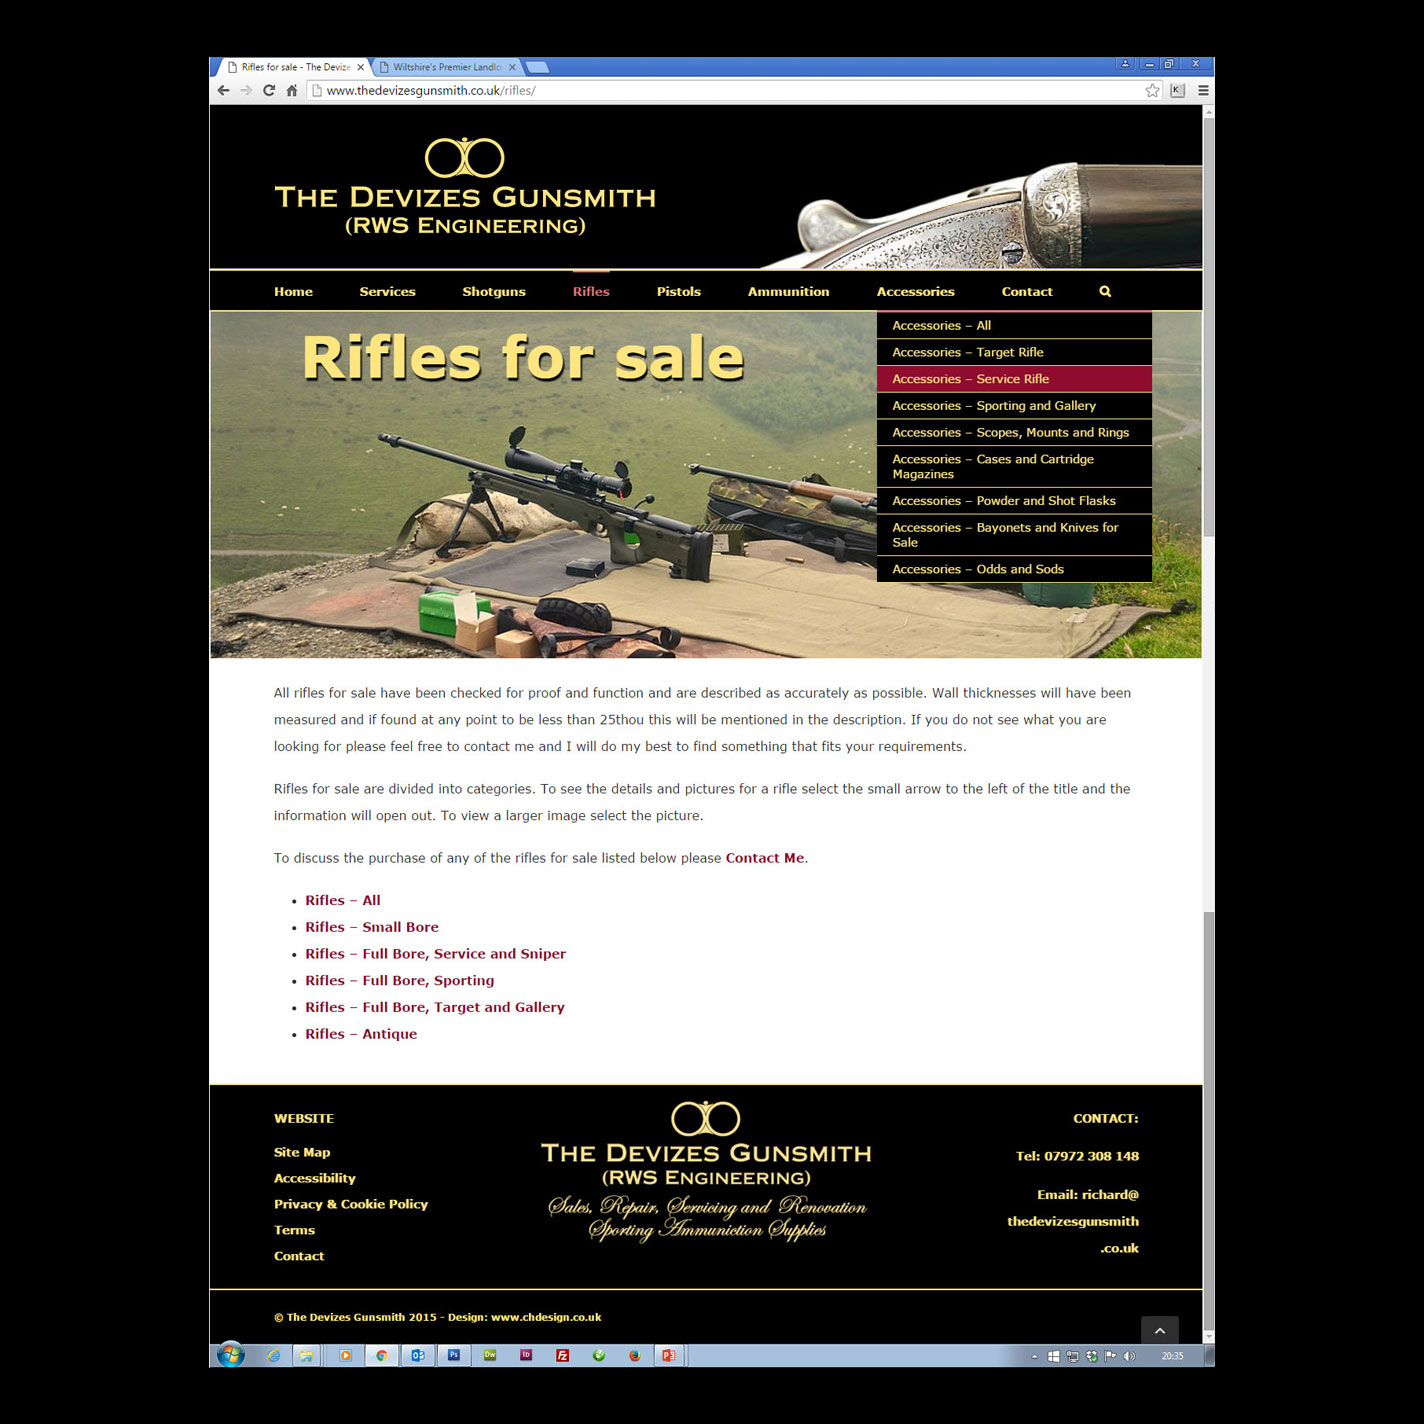 Web - 35 Page Services and Gun Listings Website for The Devizes Gunsmith in WordPress for In-house Editing - Design, Construction, Hosting & Email.